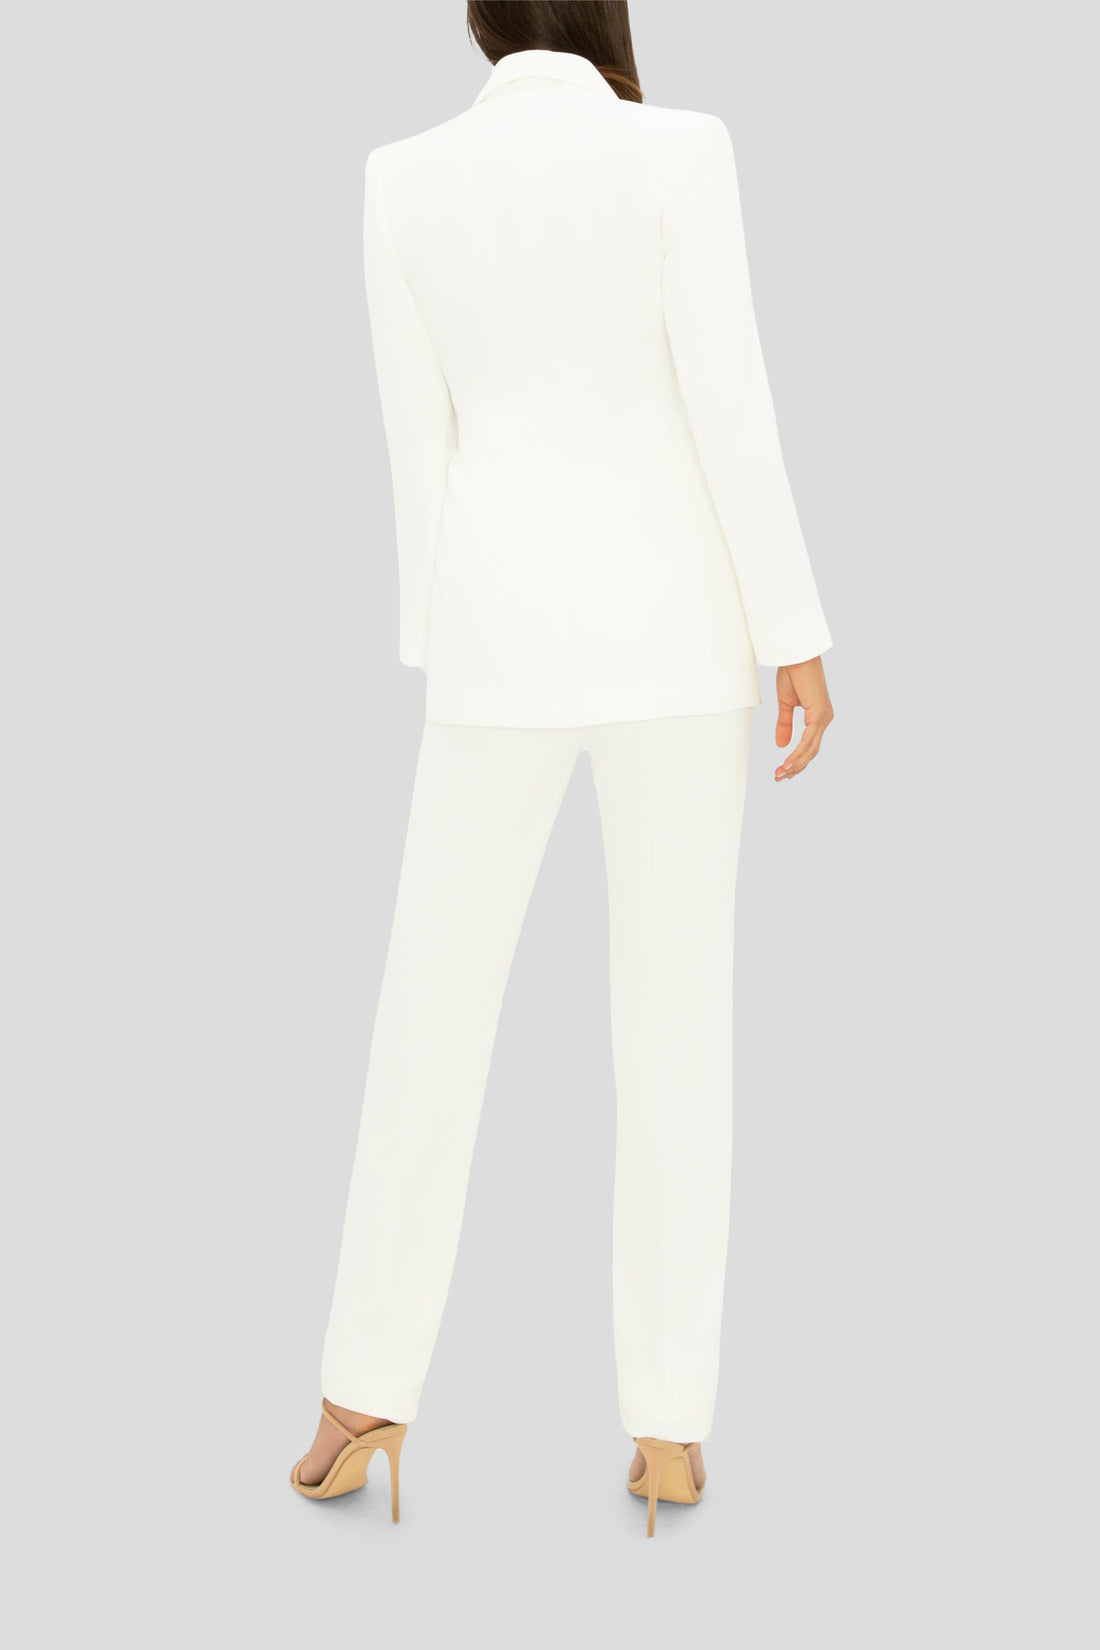 THE WHITE DREAM JACKET